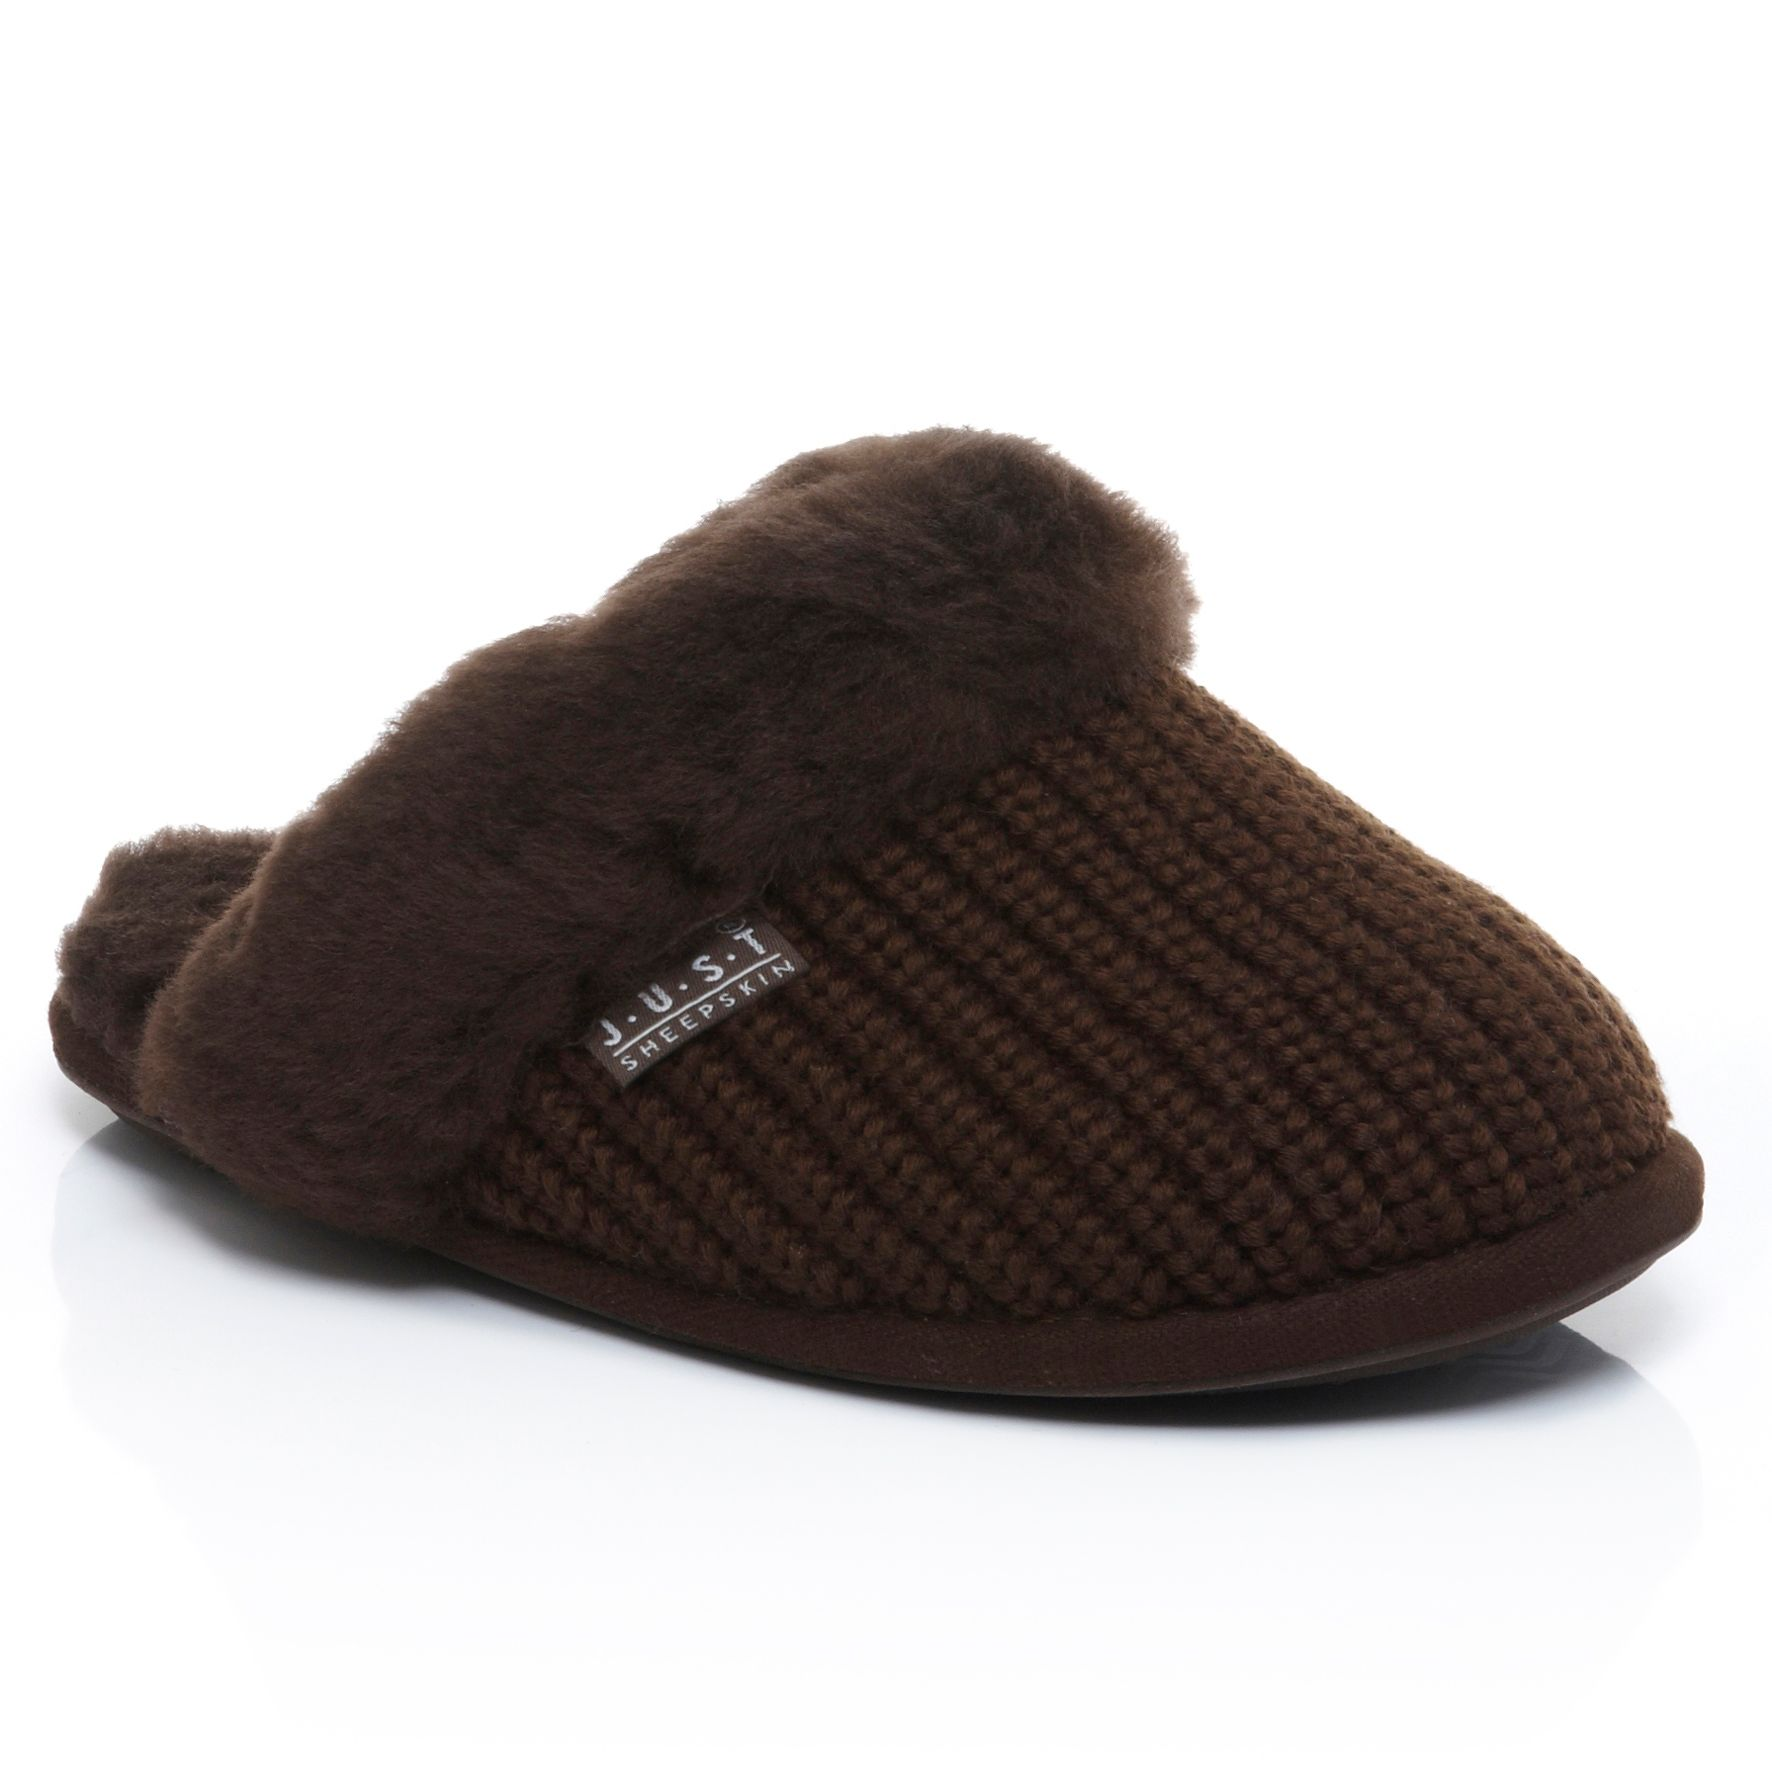 Kensington Slipper